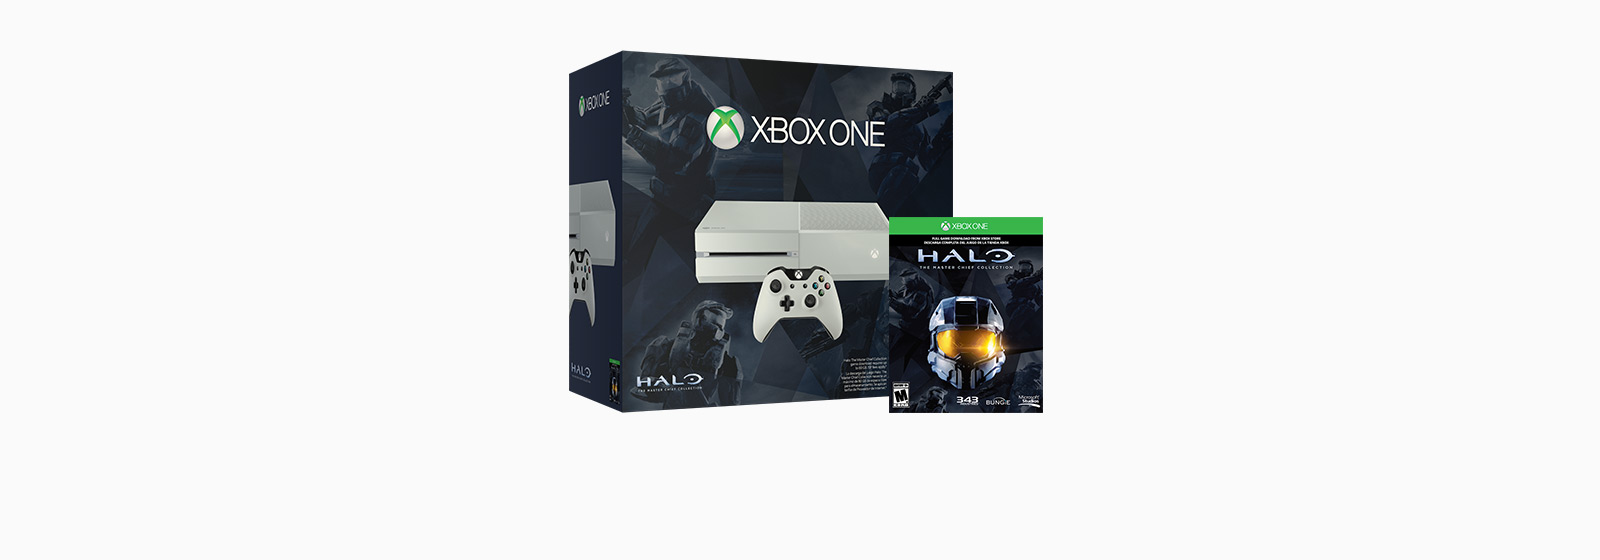 Limited quantities of special Xbox One bundle now available.